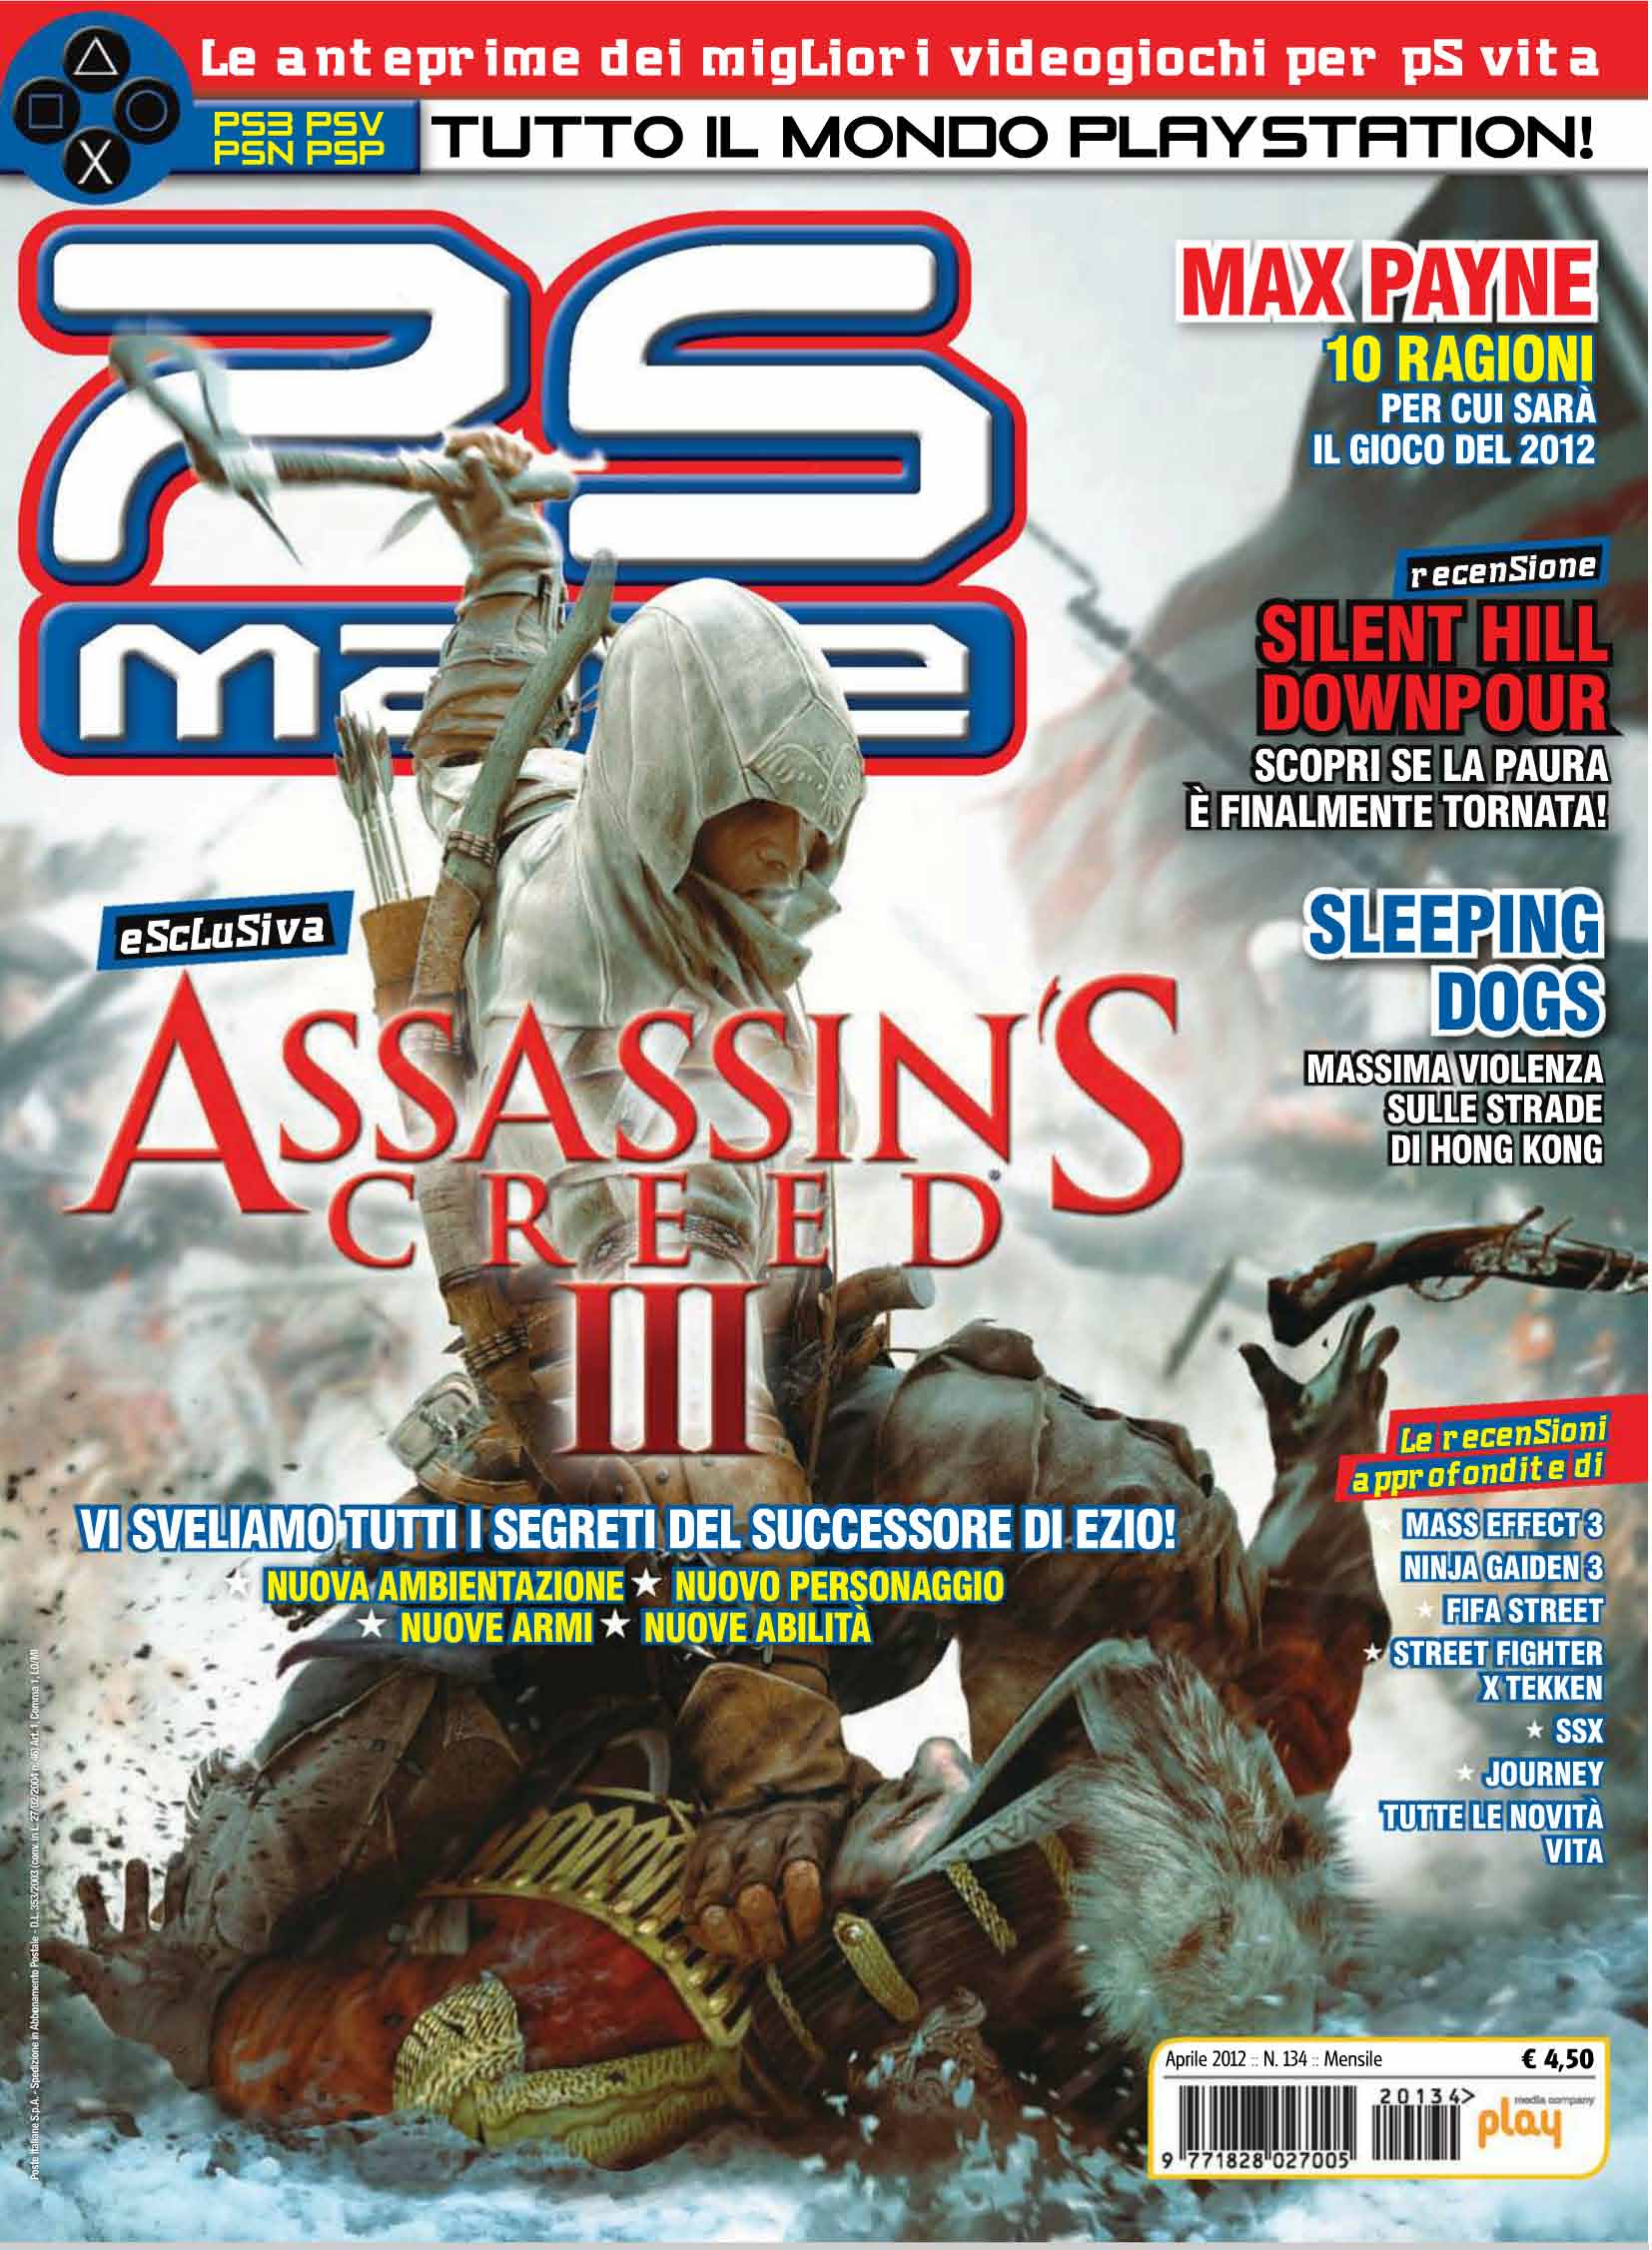 PS Mania Aprile 2012 free download